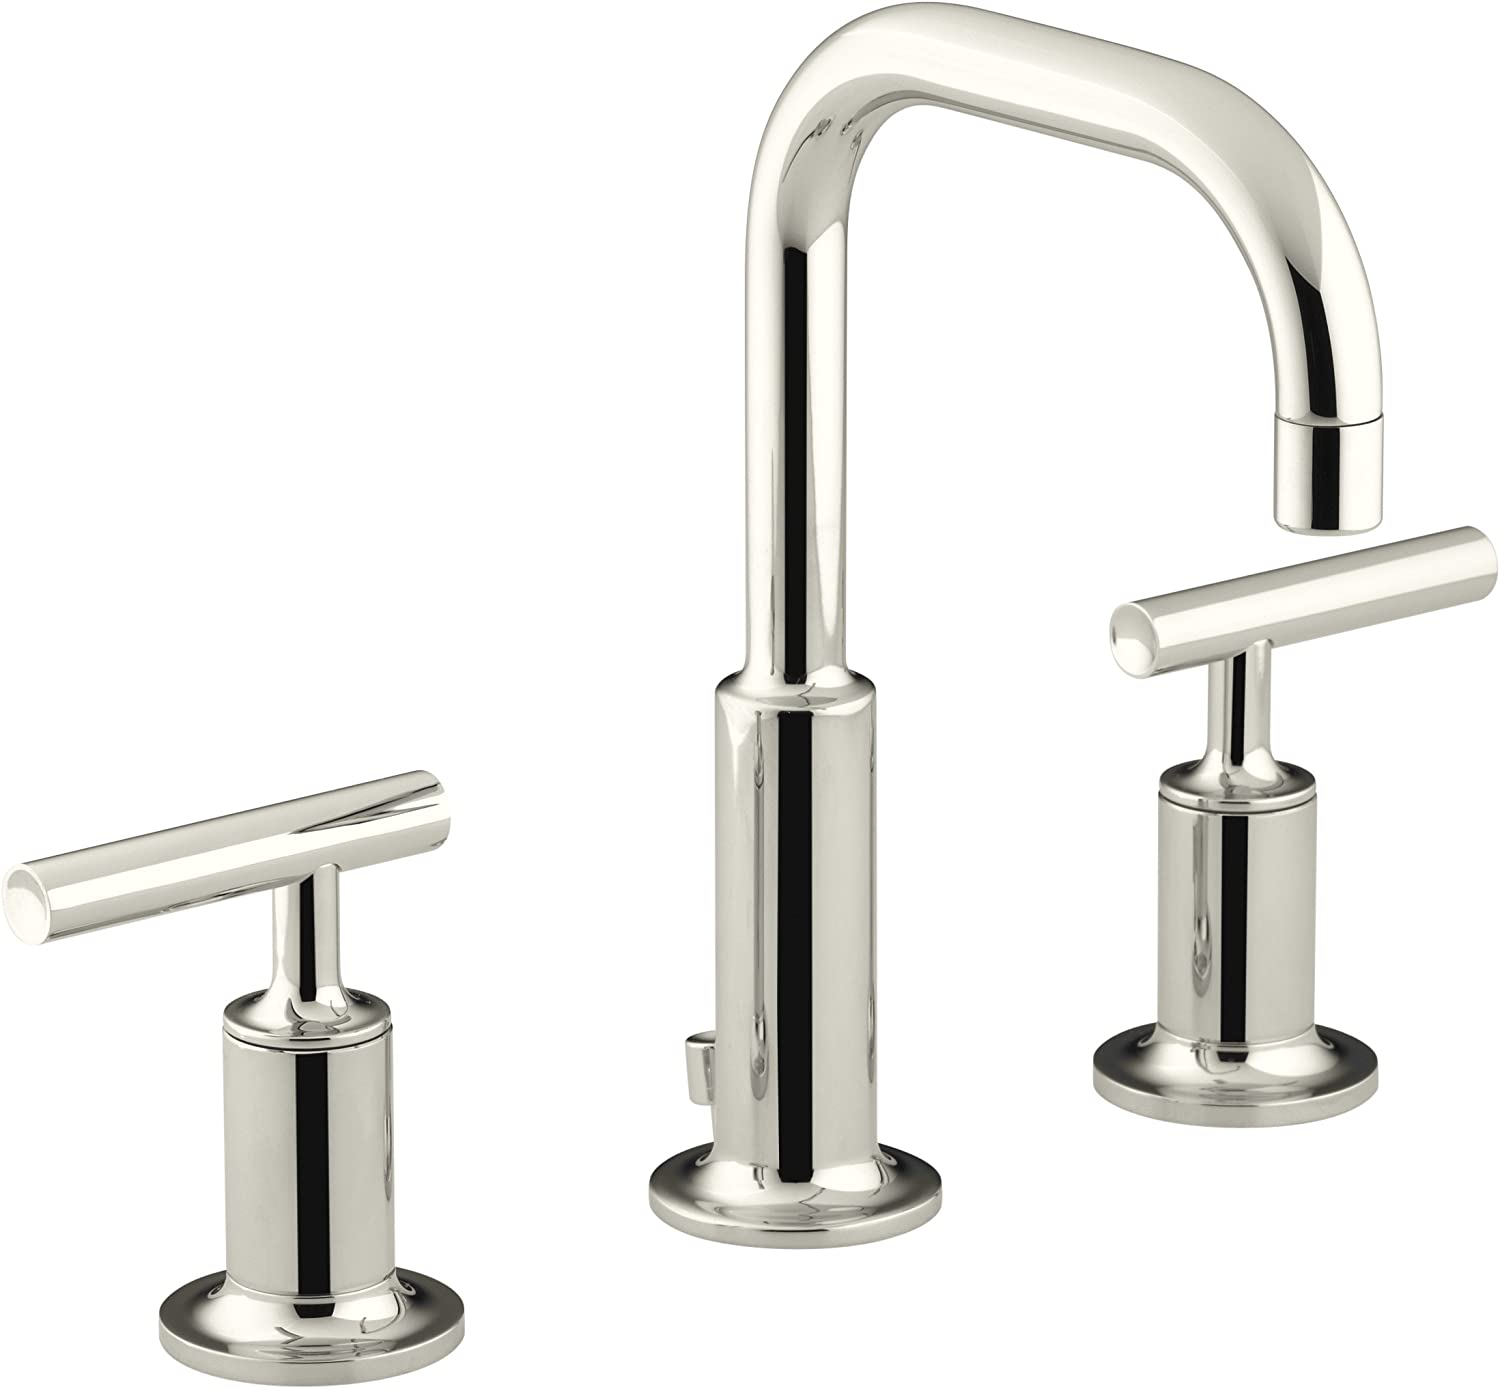 KOHLER Purist K-14406-4-SN Widespread Bathroom Sink Faucet with Metal Drain Assembly in Polished Nickel